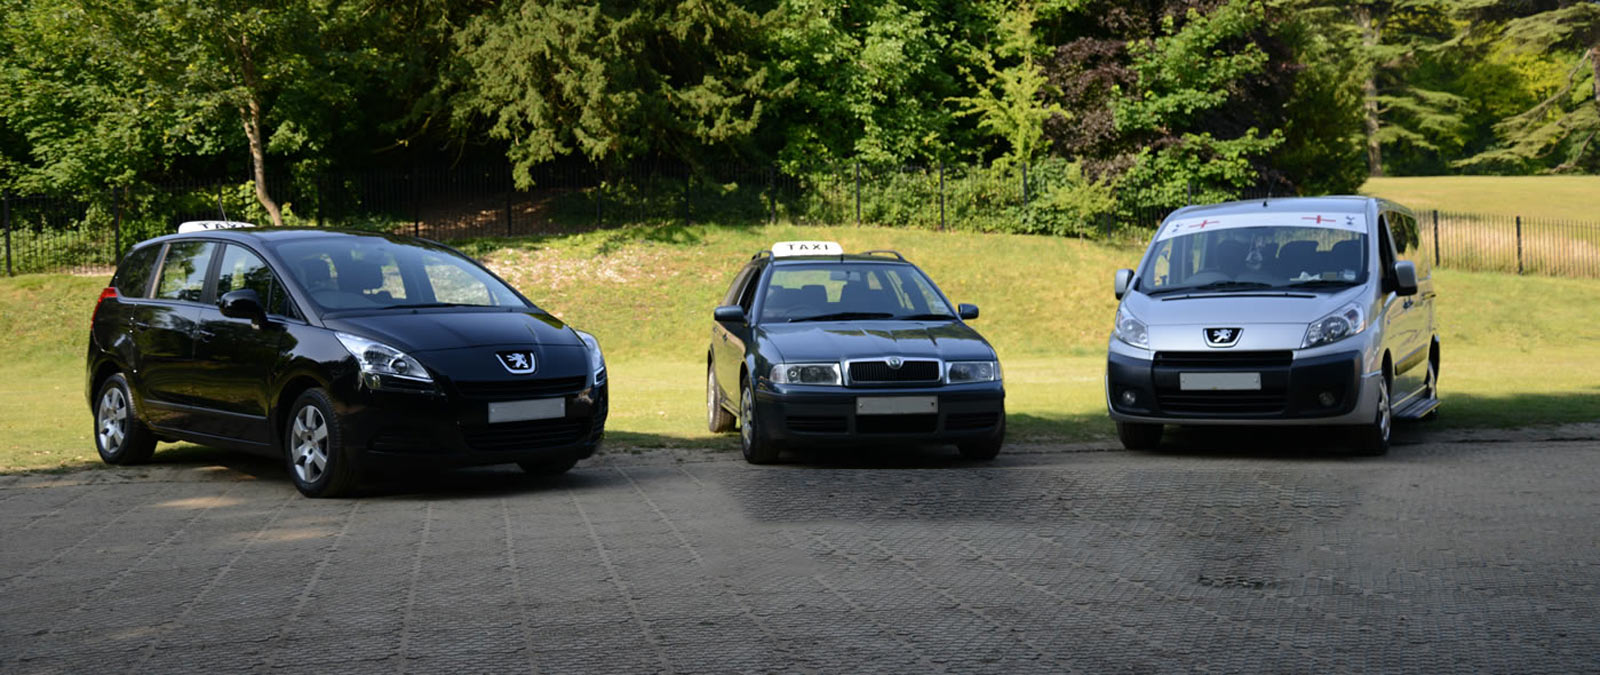 sussex taxis cars